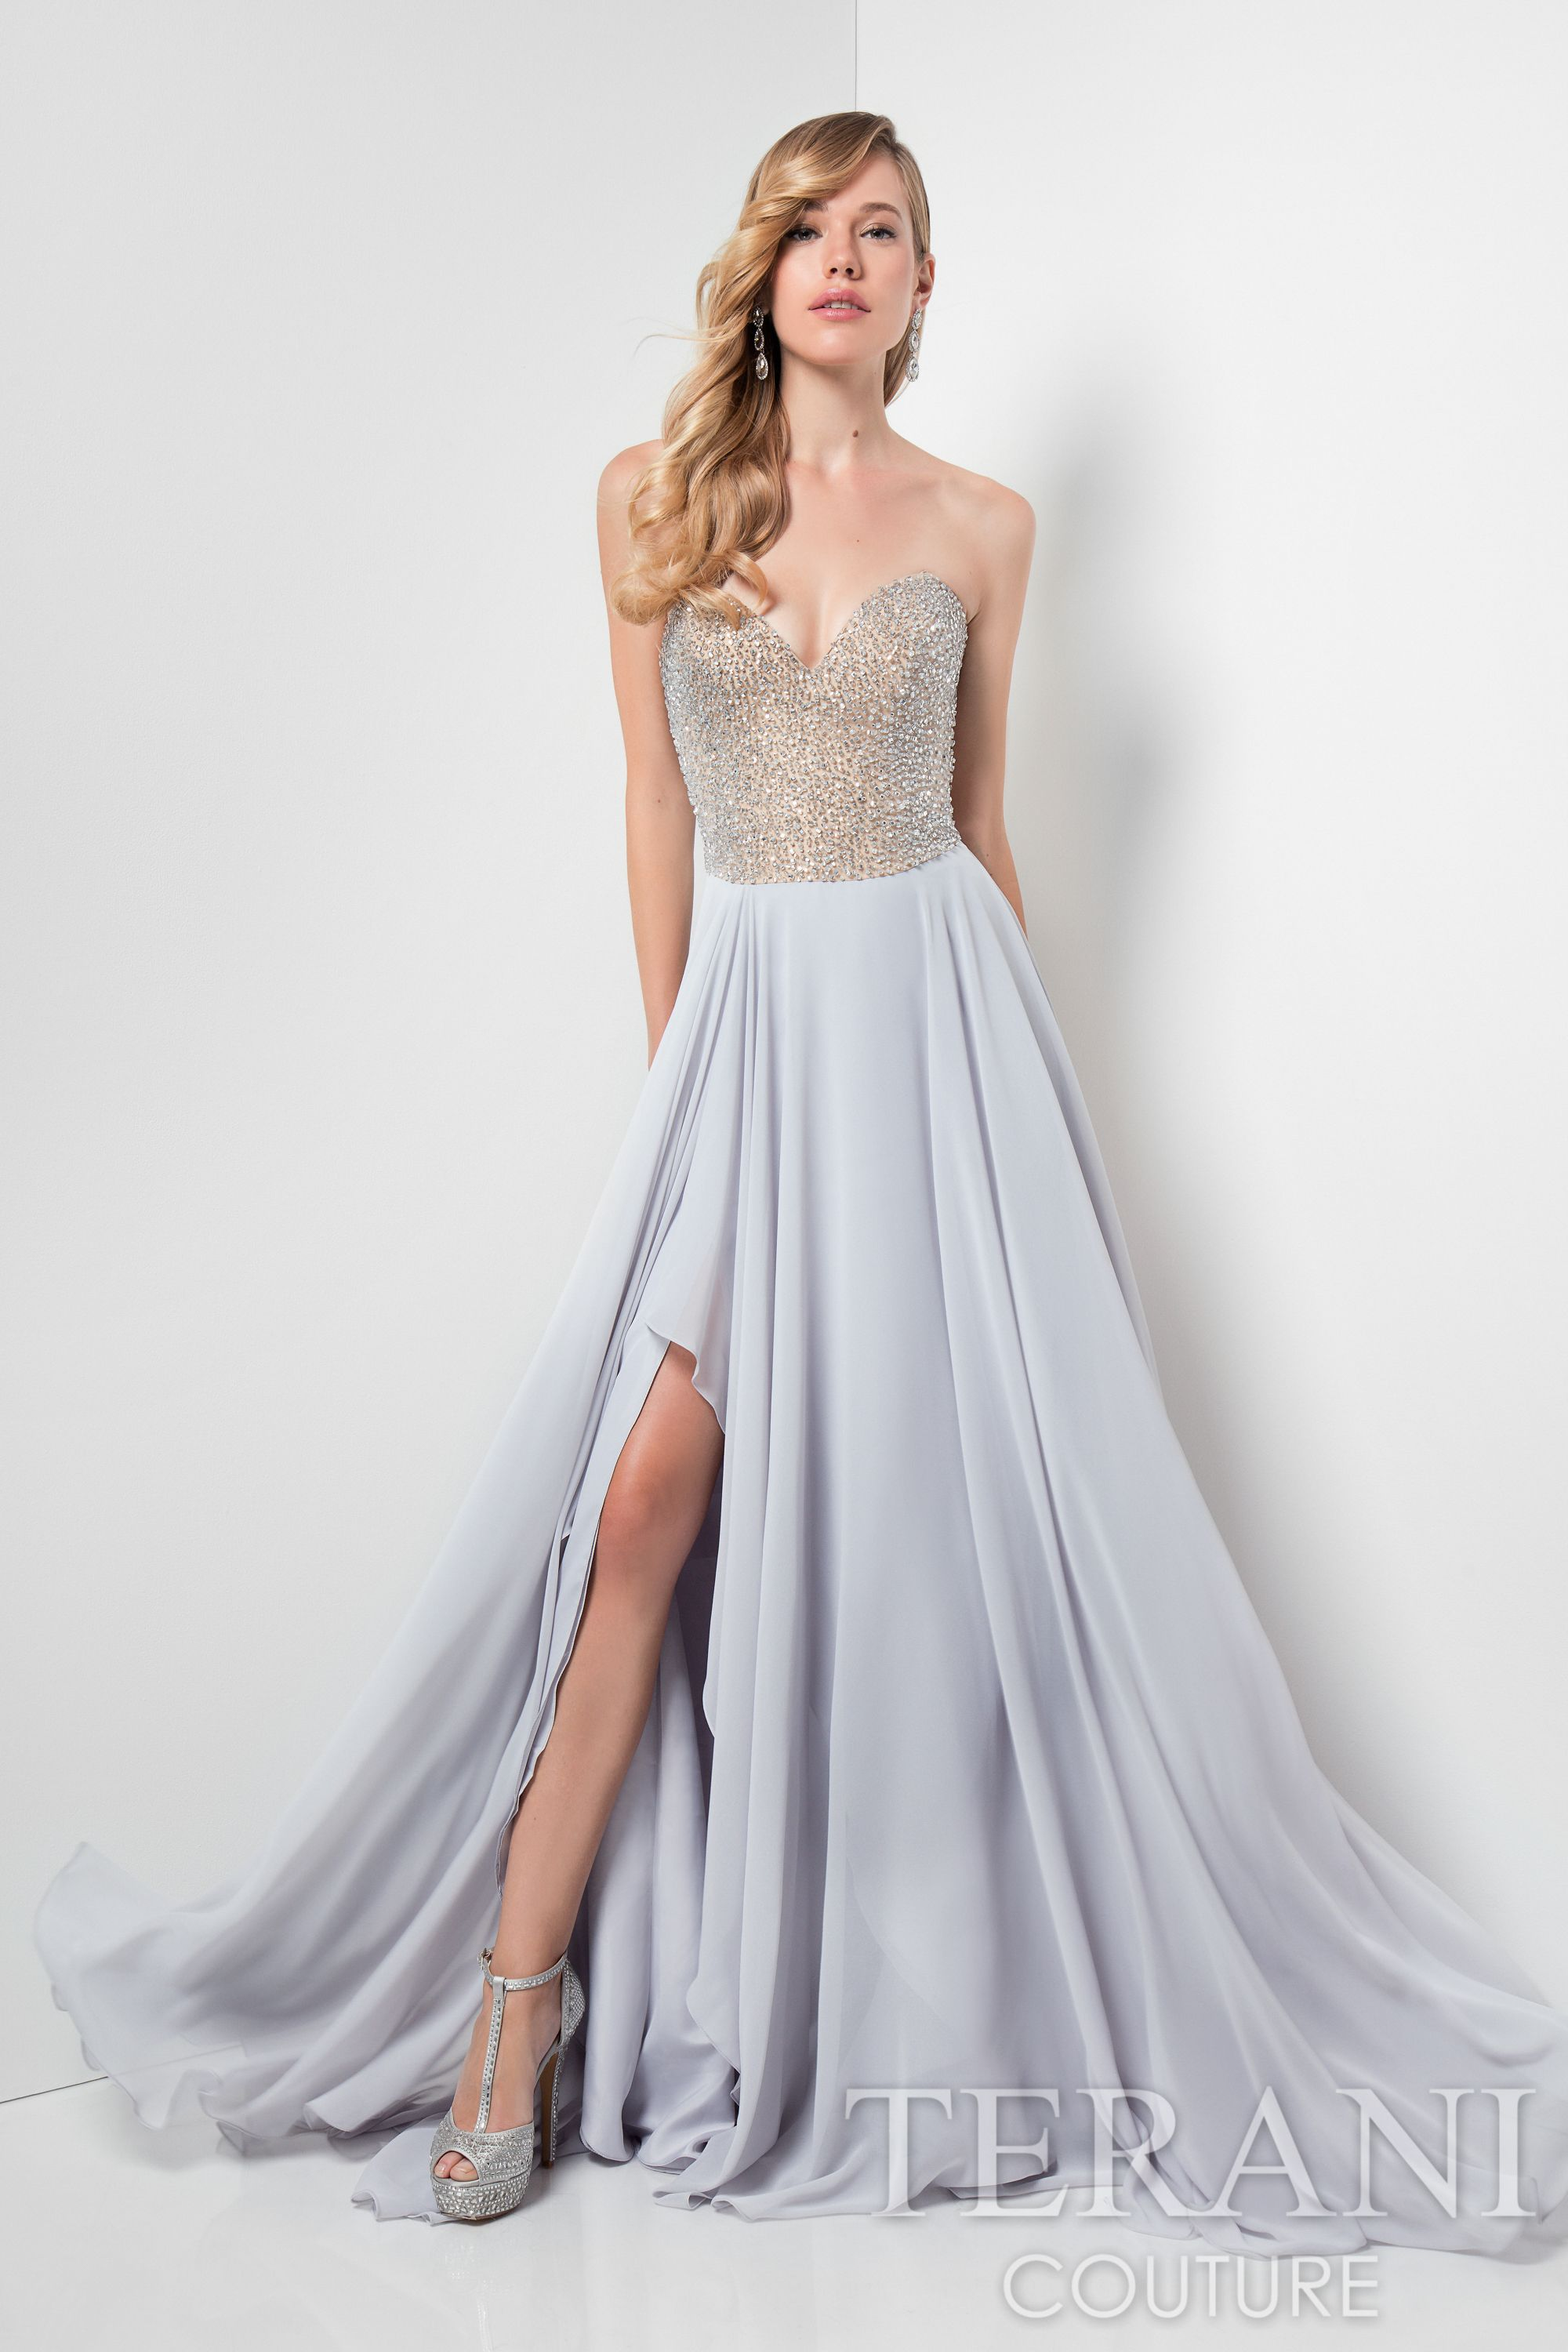 Pfront gabbi prom pinterest products couture and